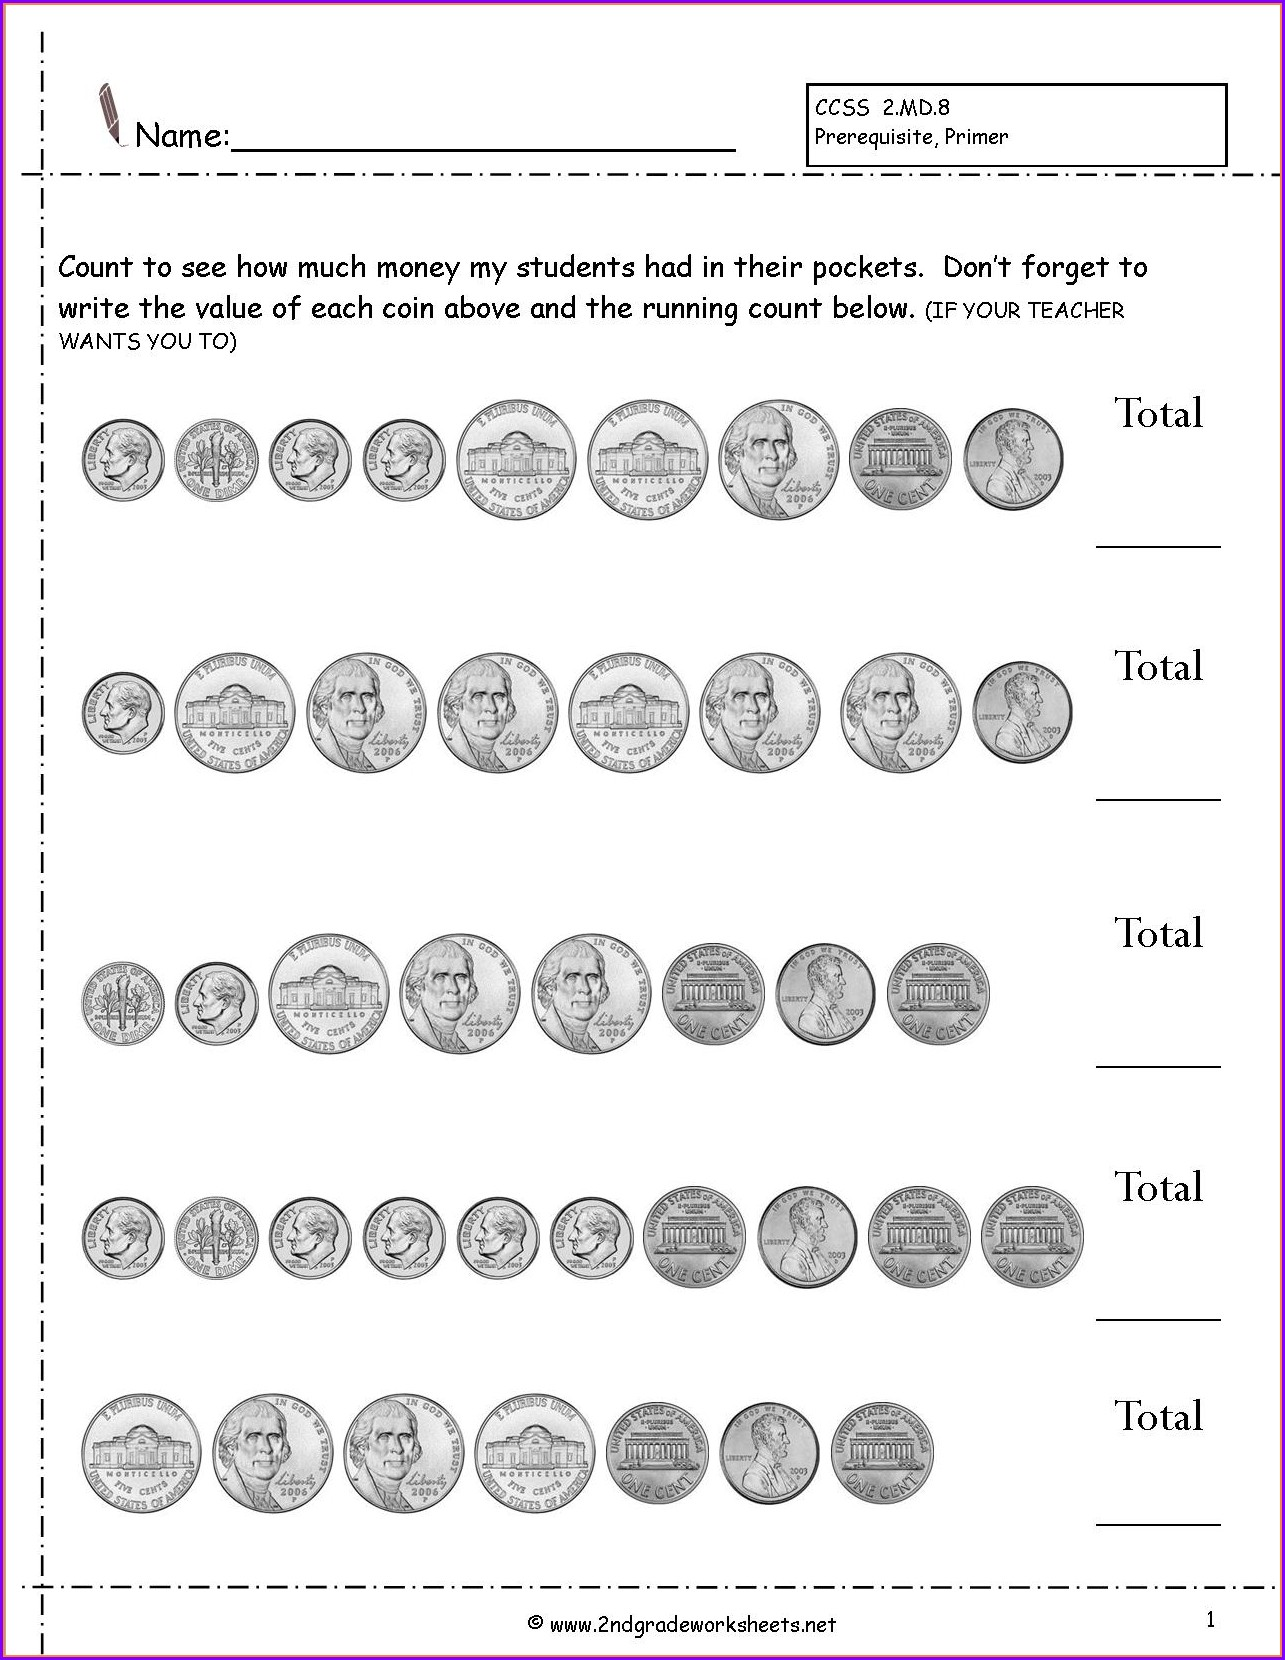 Printable Counting Money Worksheets 2nd Grade